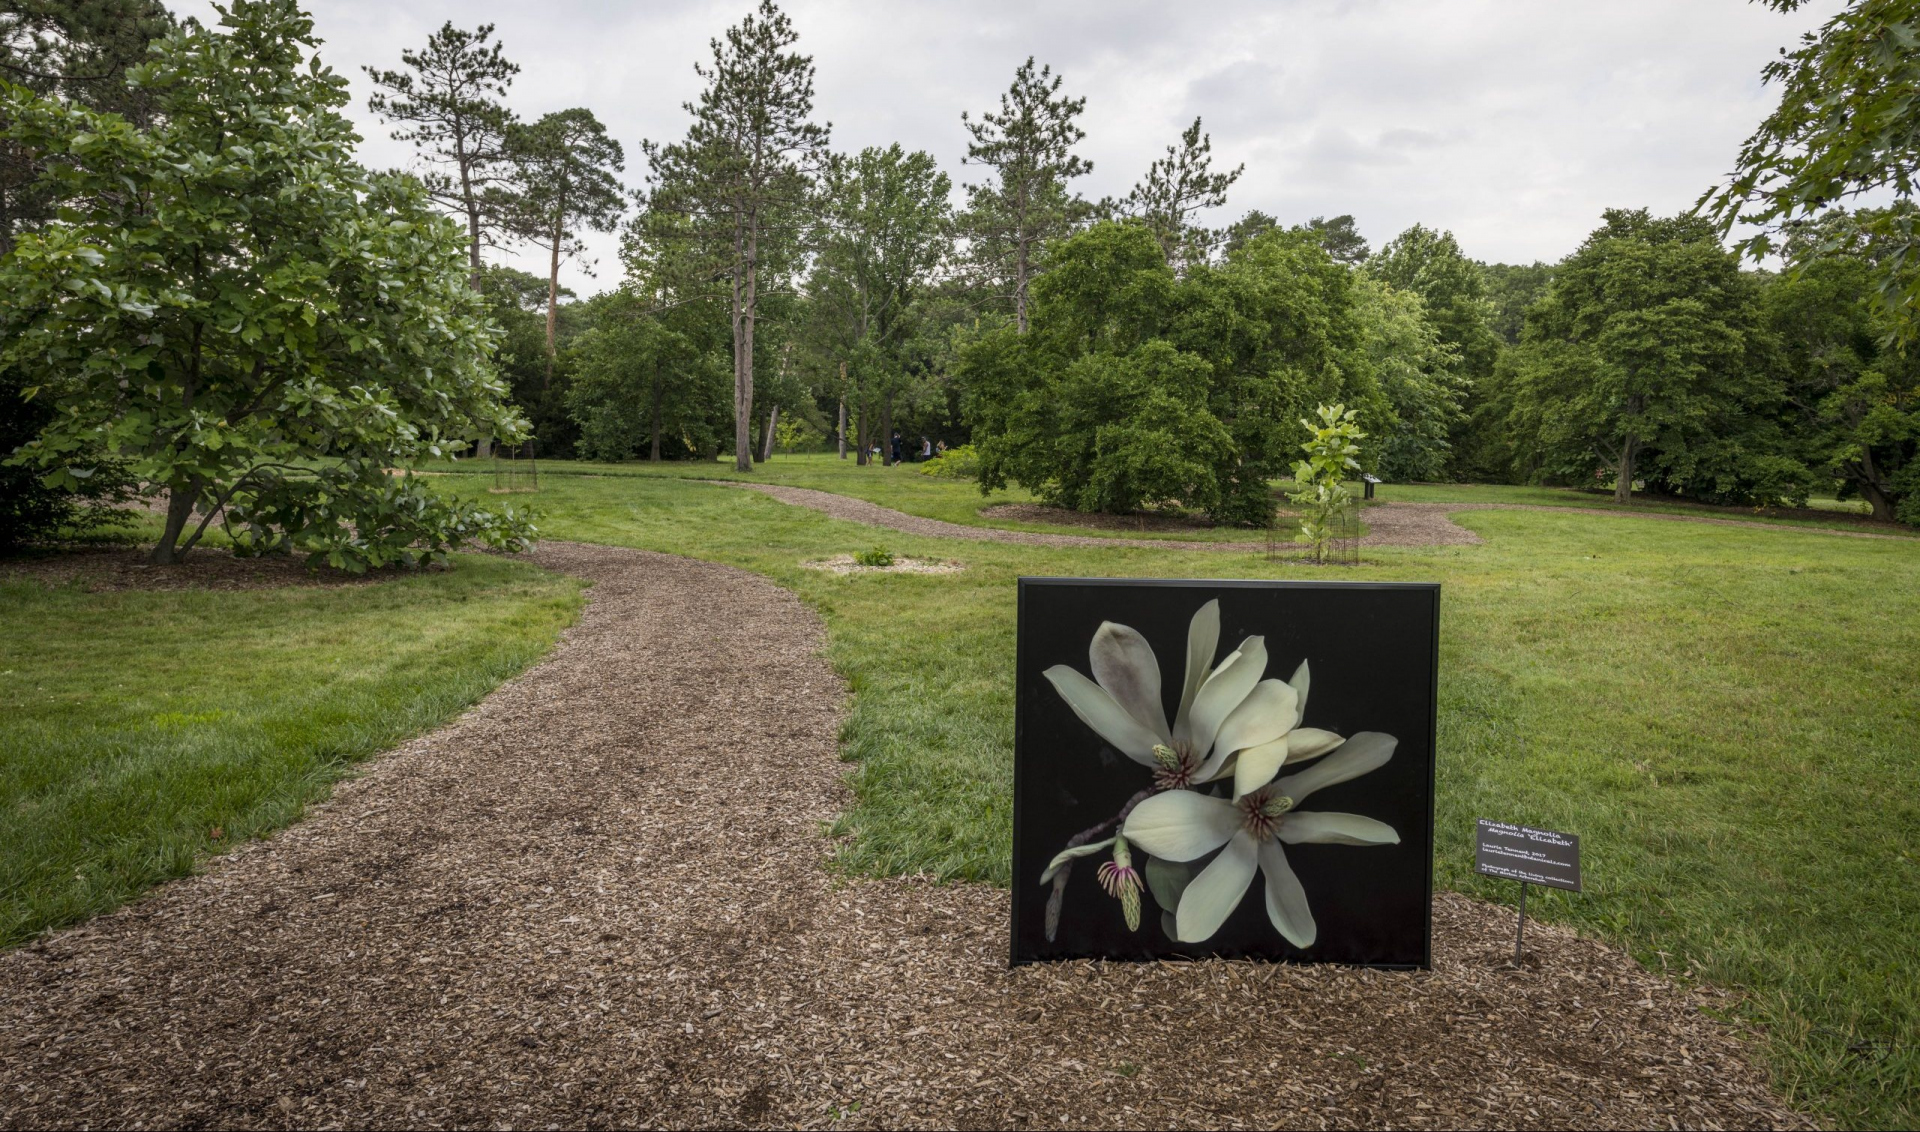 Magnolia collection in summer, featuring a photo installation by Laurie Tennent.